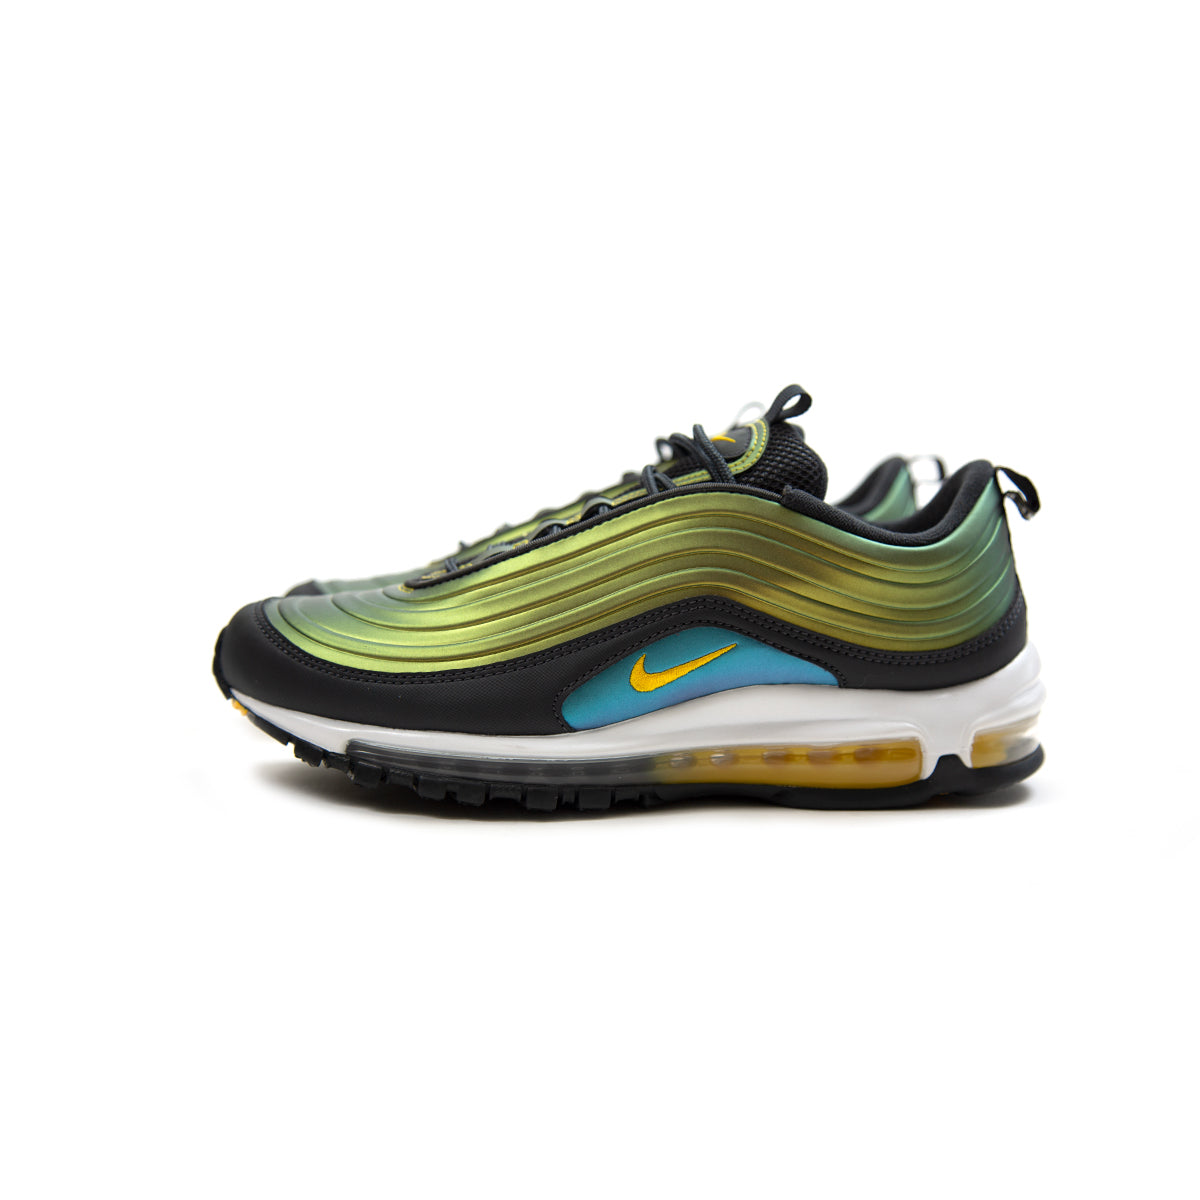 new style 6634a ad5d0 ConceptsIntl   Nike Air Max 97 LX (Anthracite Amarillo-Summit White)